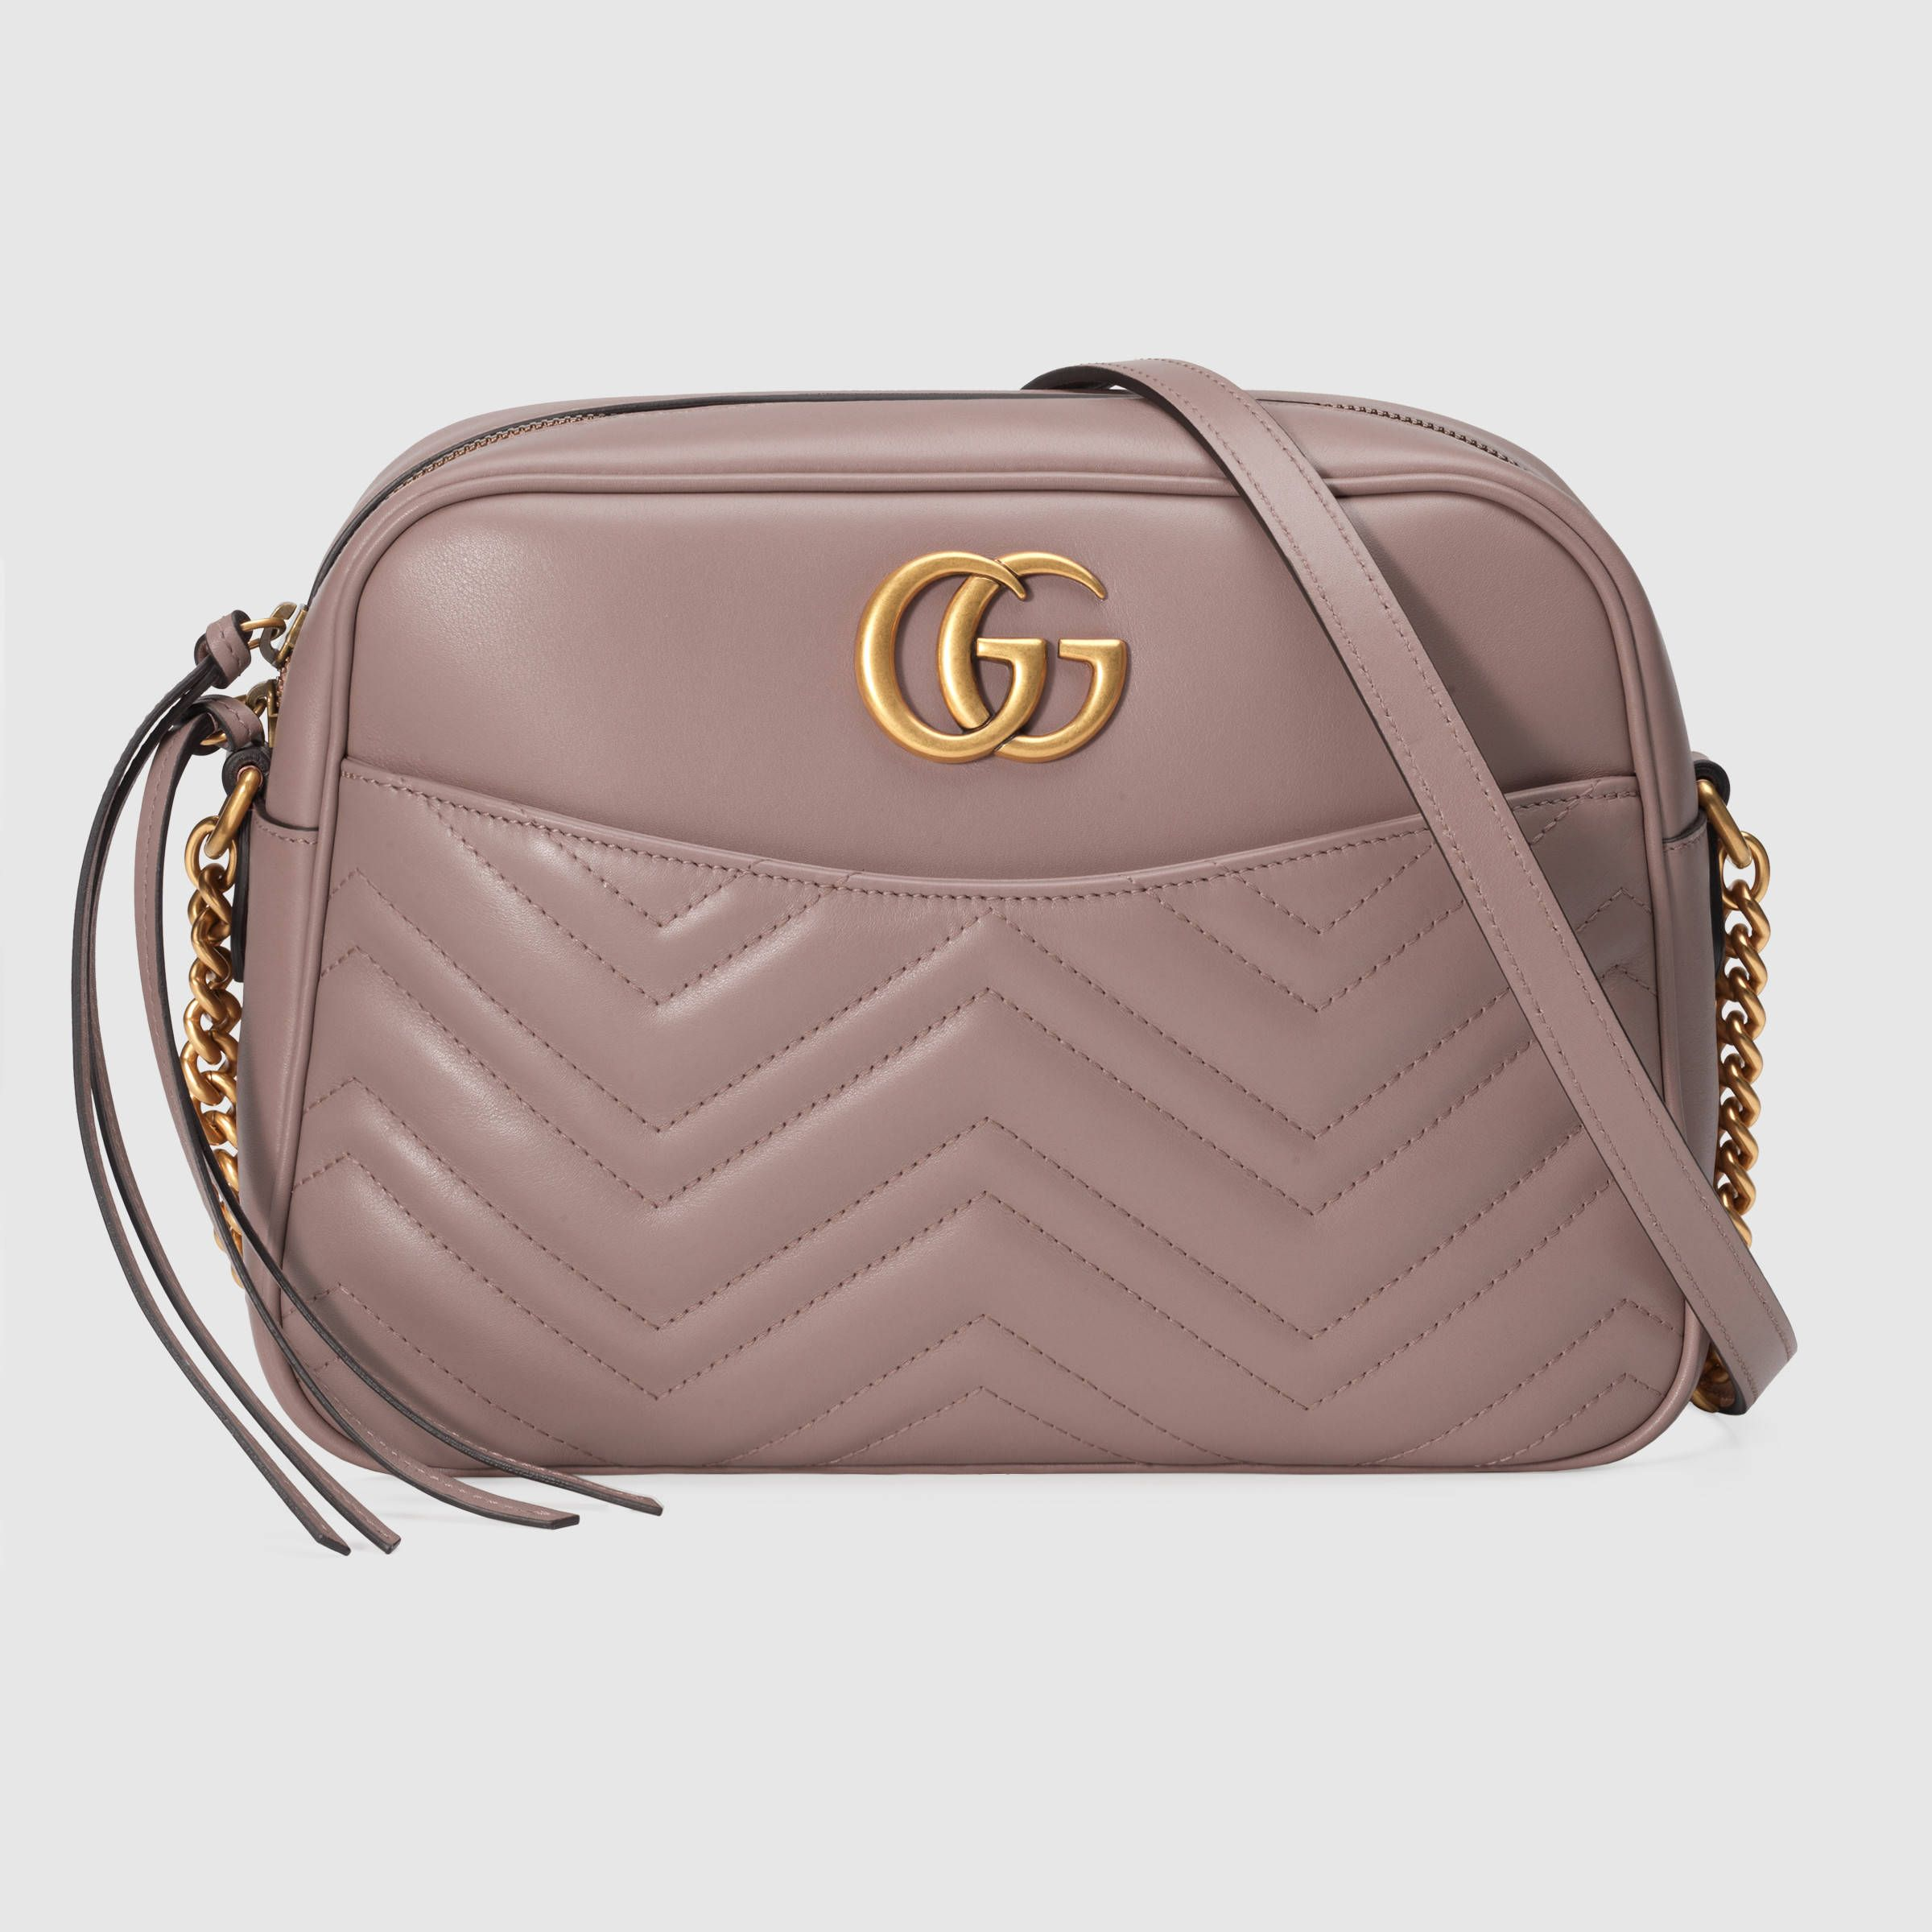 GG Marmont matelassé mini bag in 2019  ce3bbc224a0de